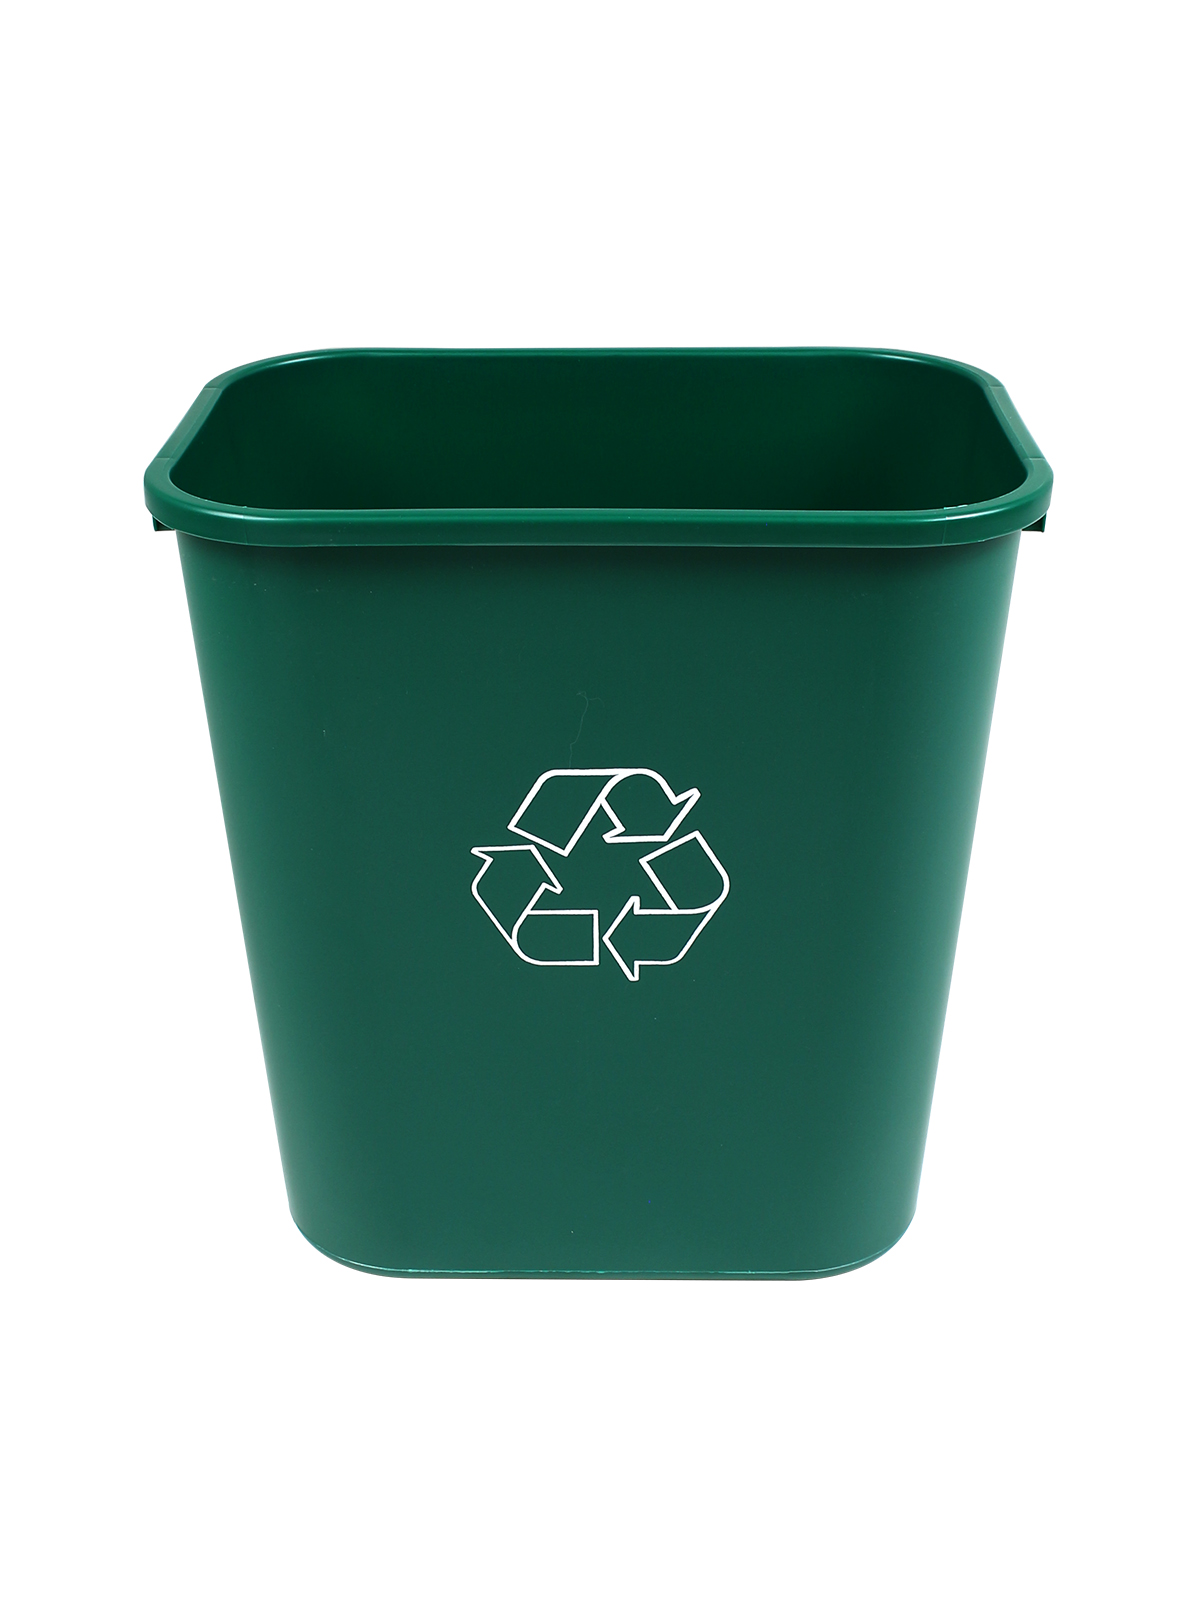 RECYCLING & WASTE BASKET - Body - 28 Q - Mobius Loop - Dark Green